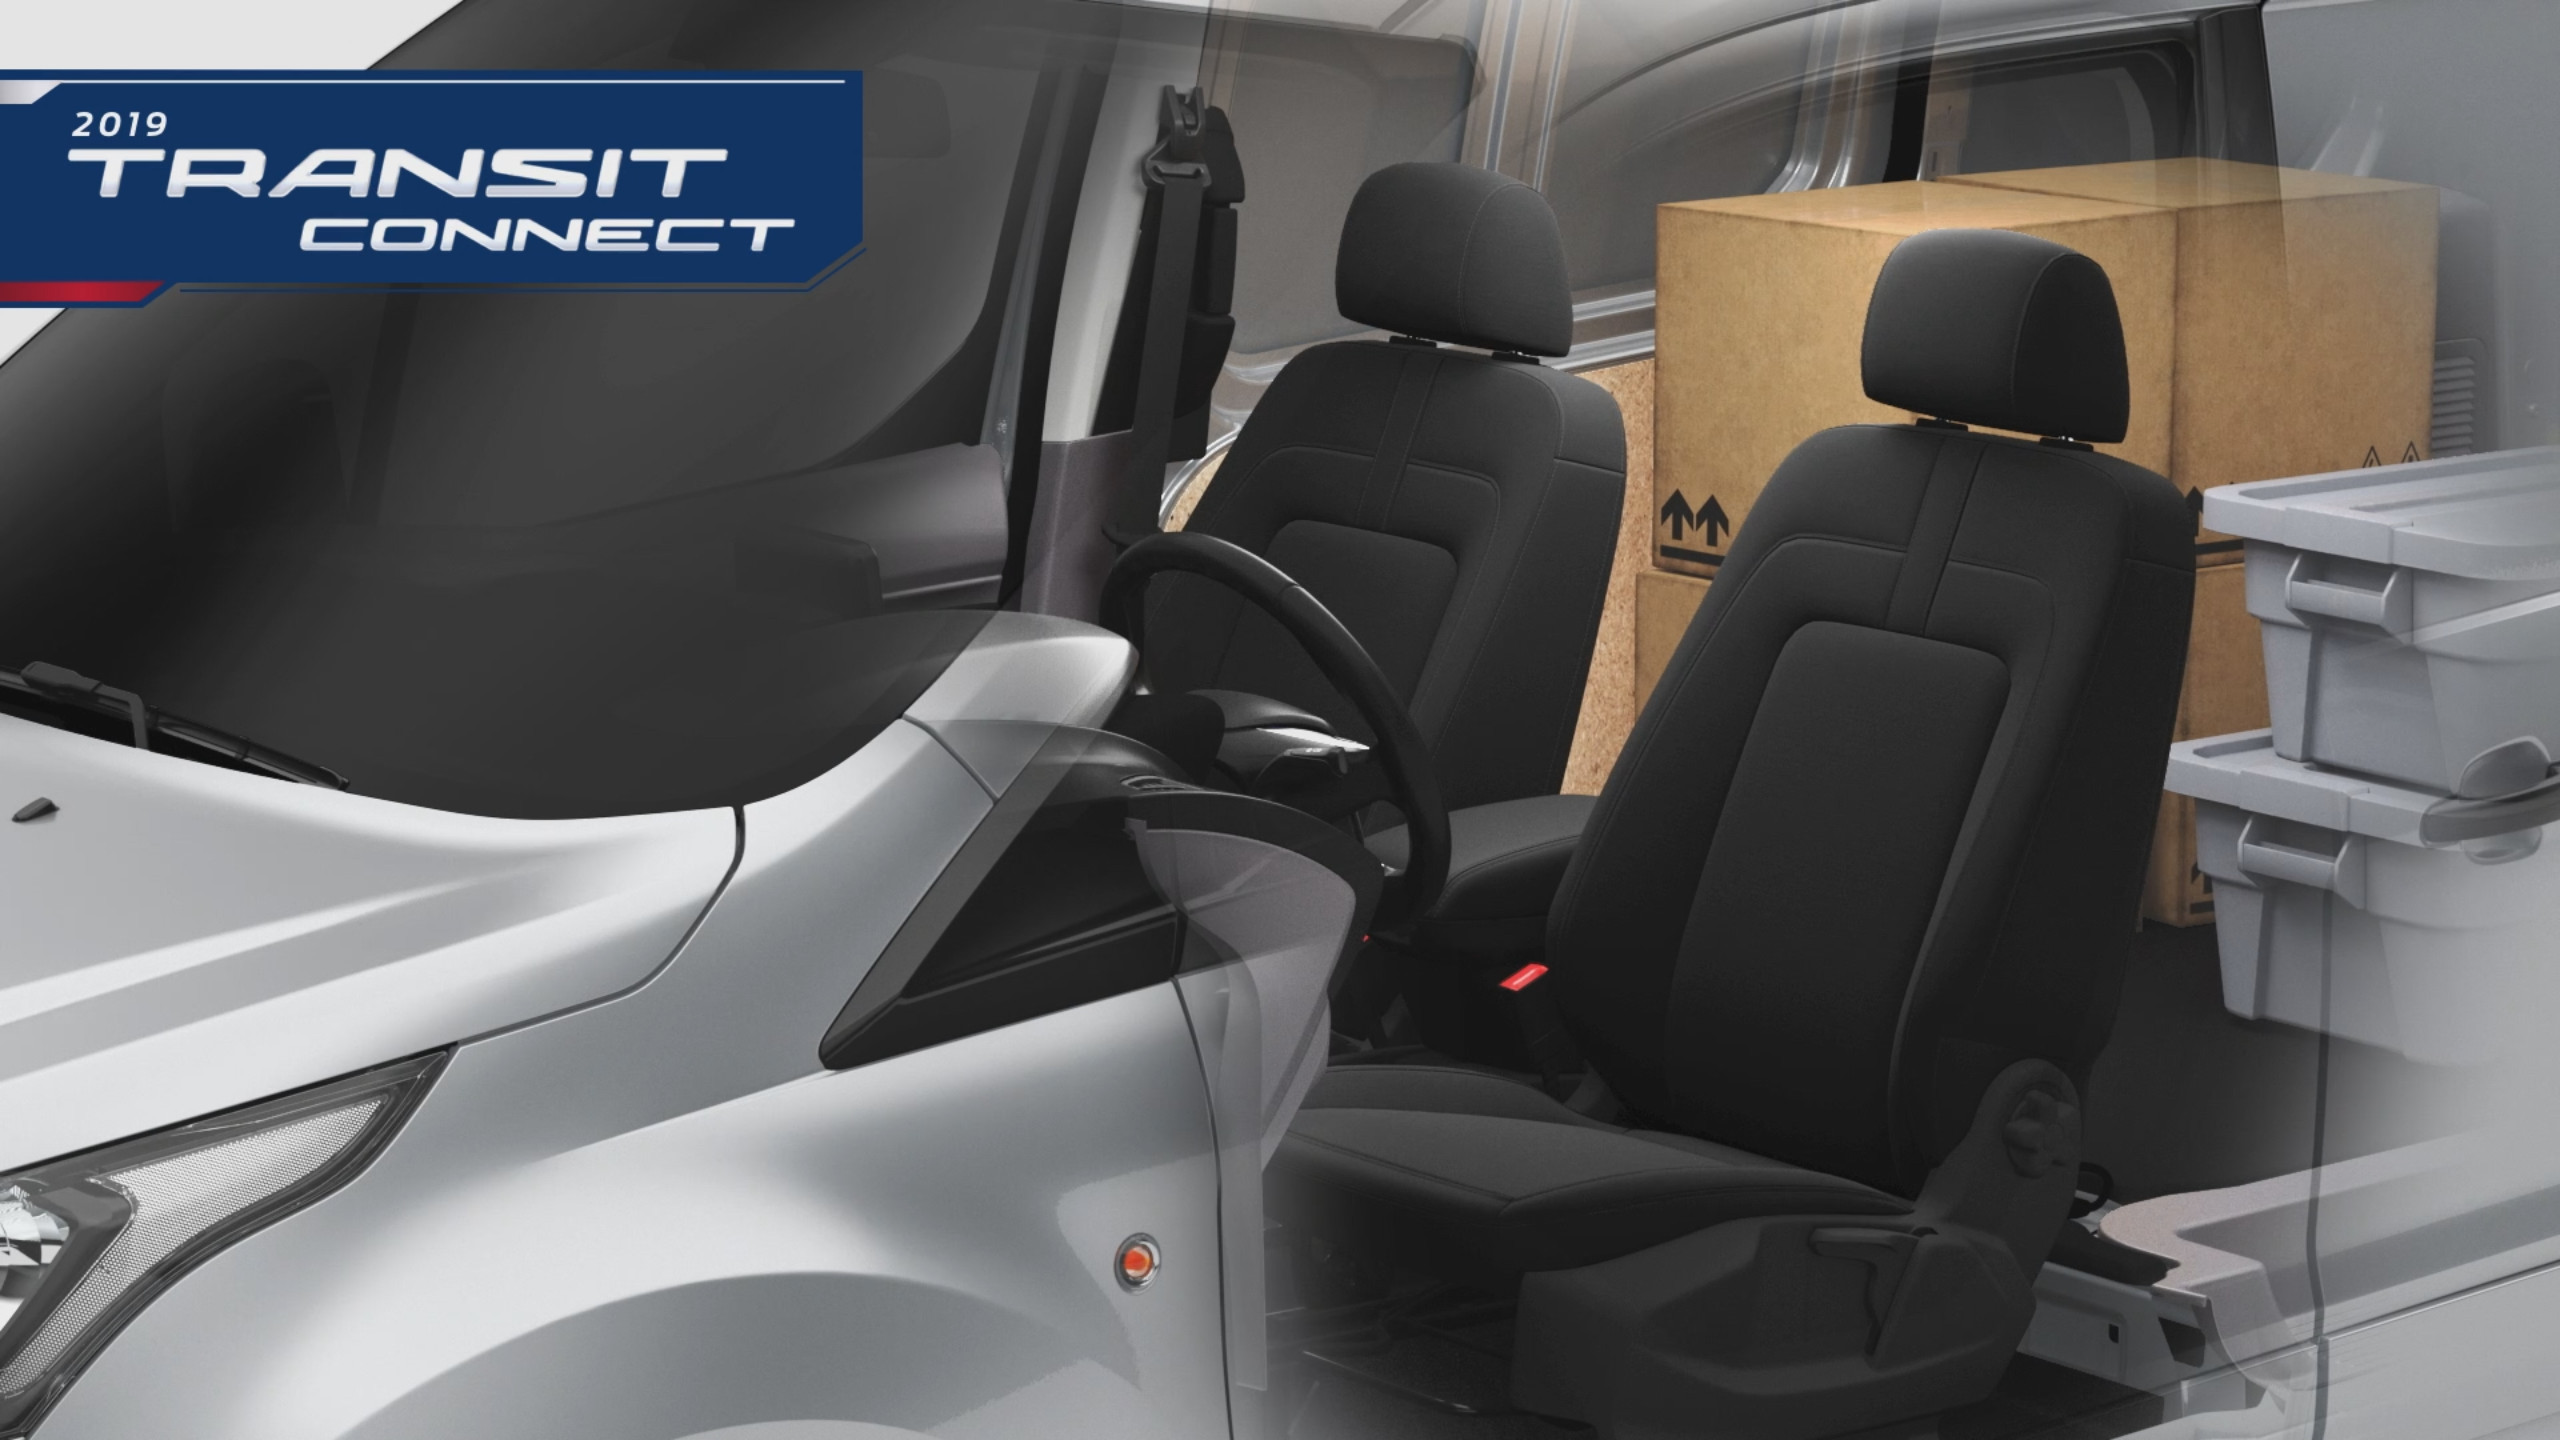 2019 Ford Transit Connect Animation